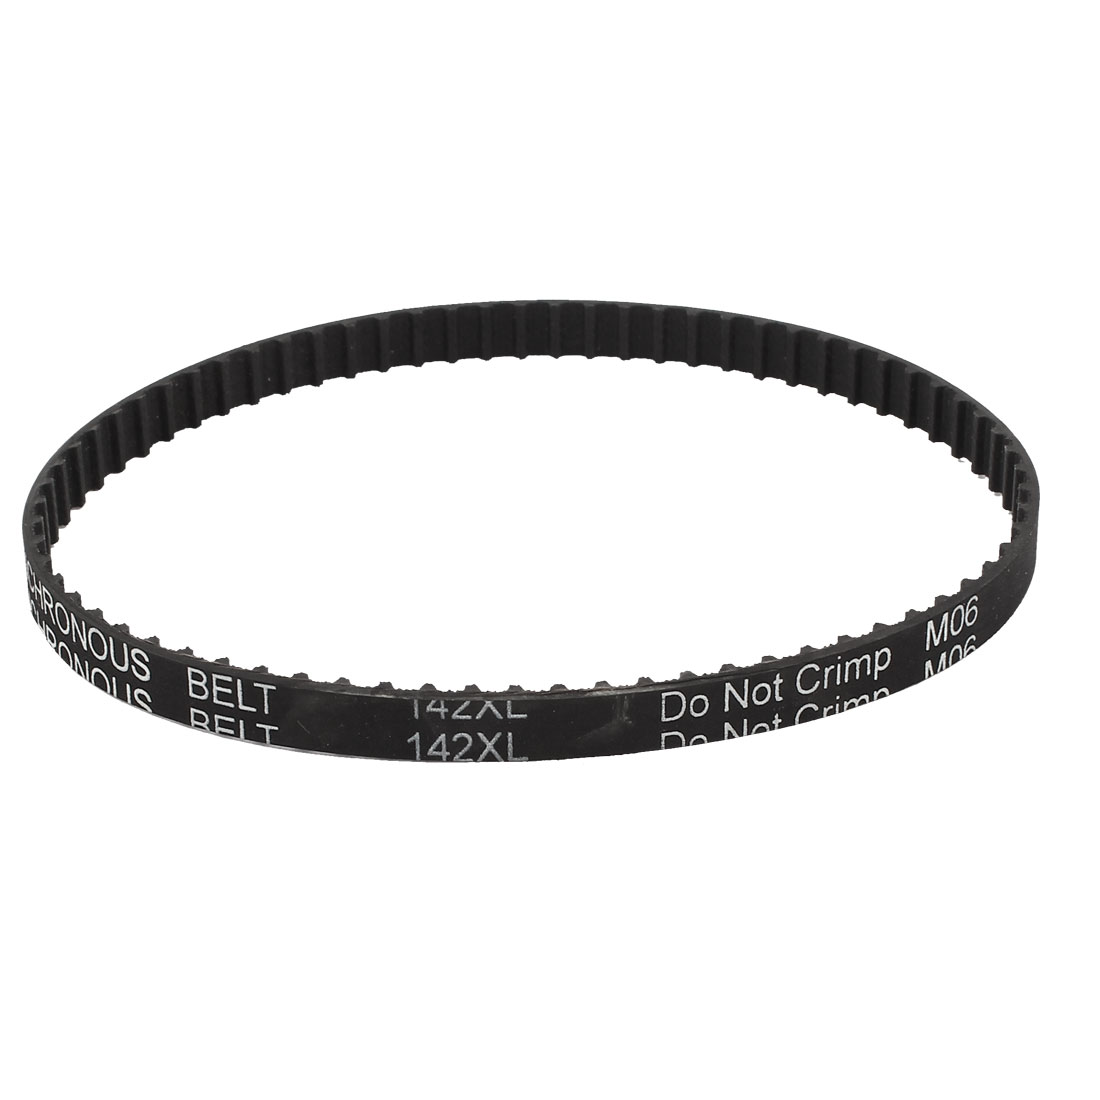 142XL 031 71 Teeth 5.08mm Pitch 7.9mm Width Industrial Timing Belt 360.68mm